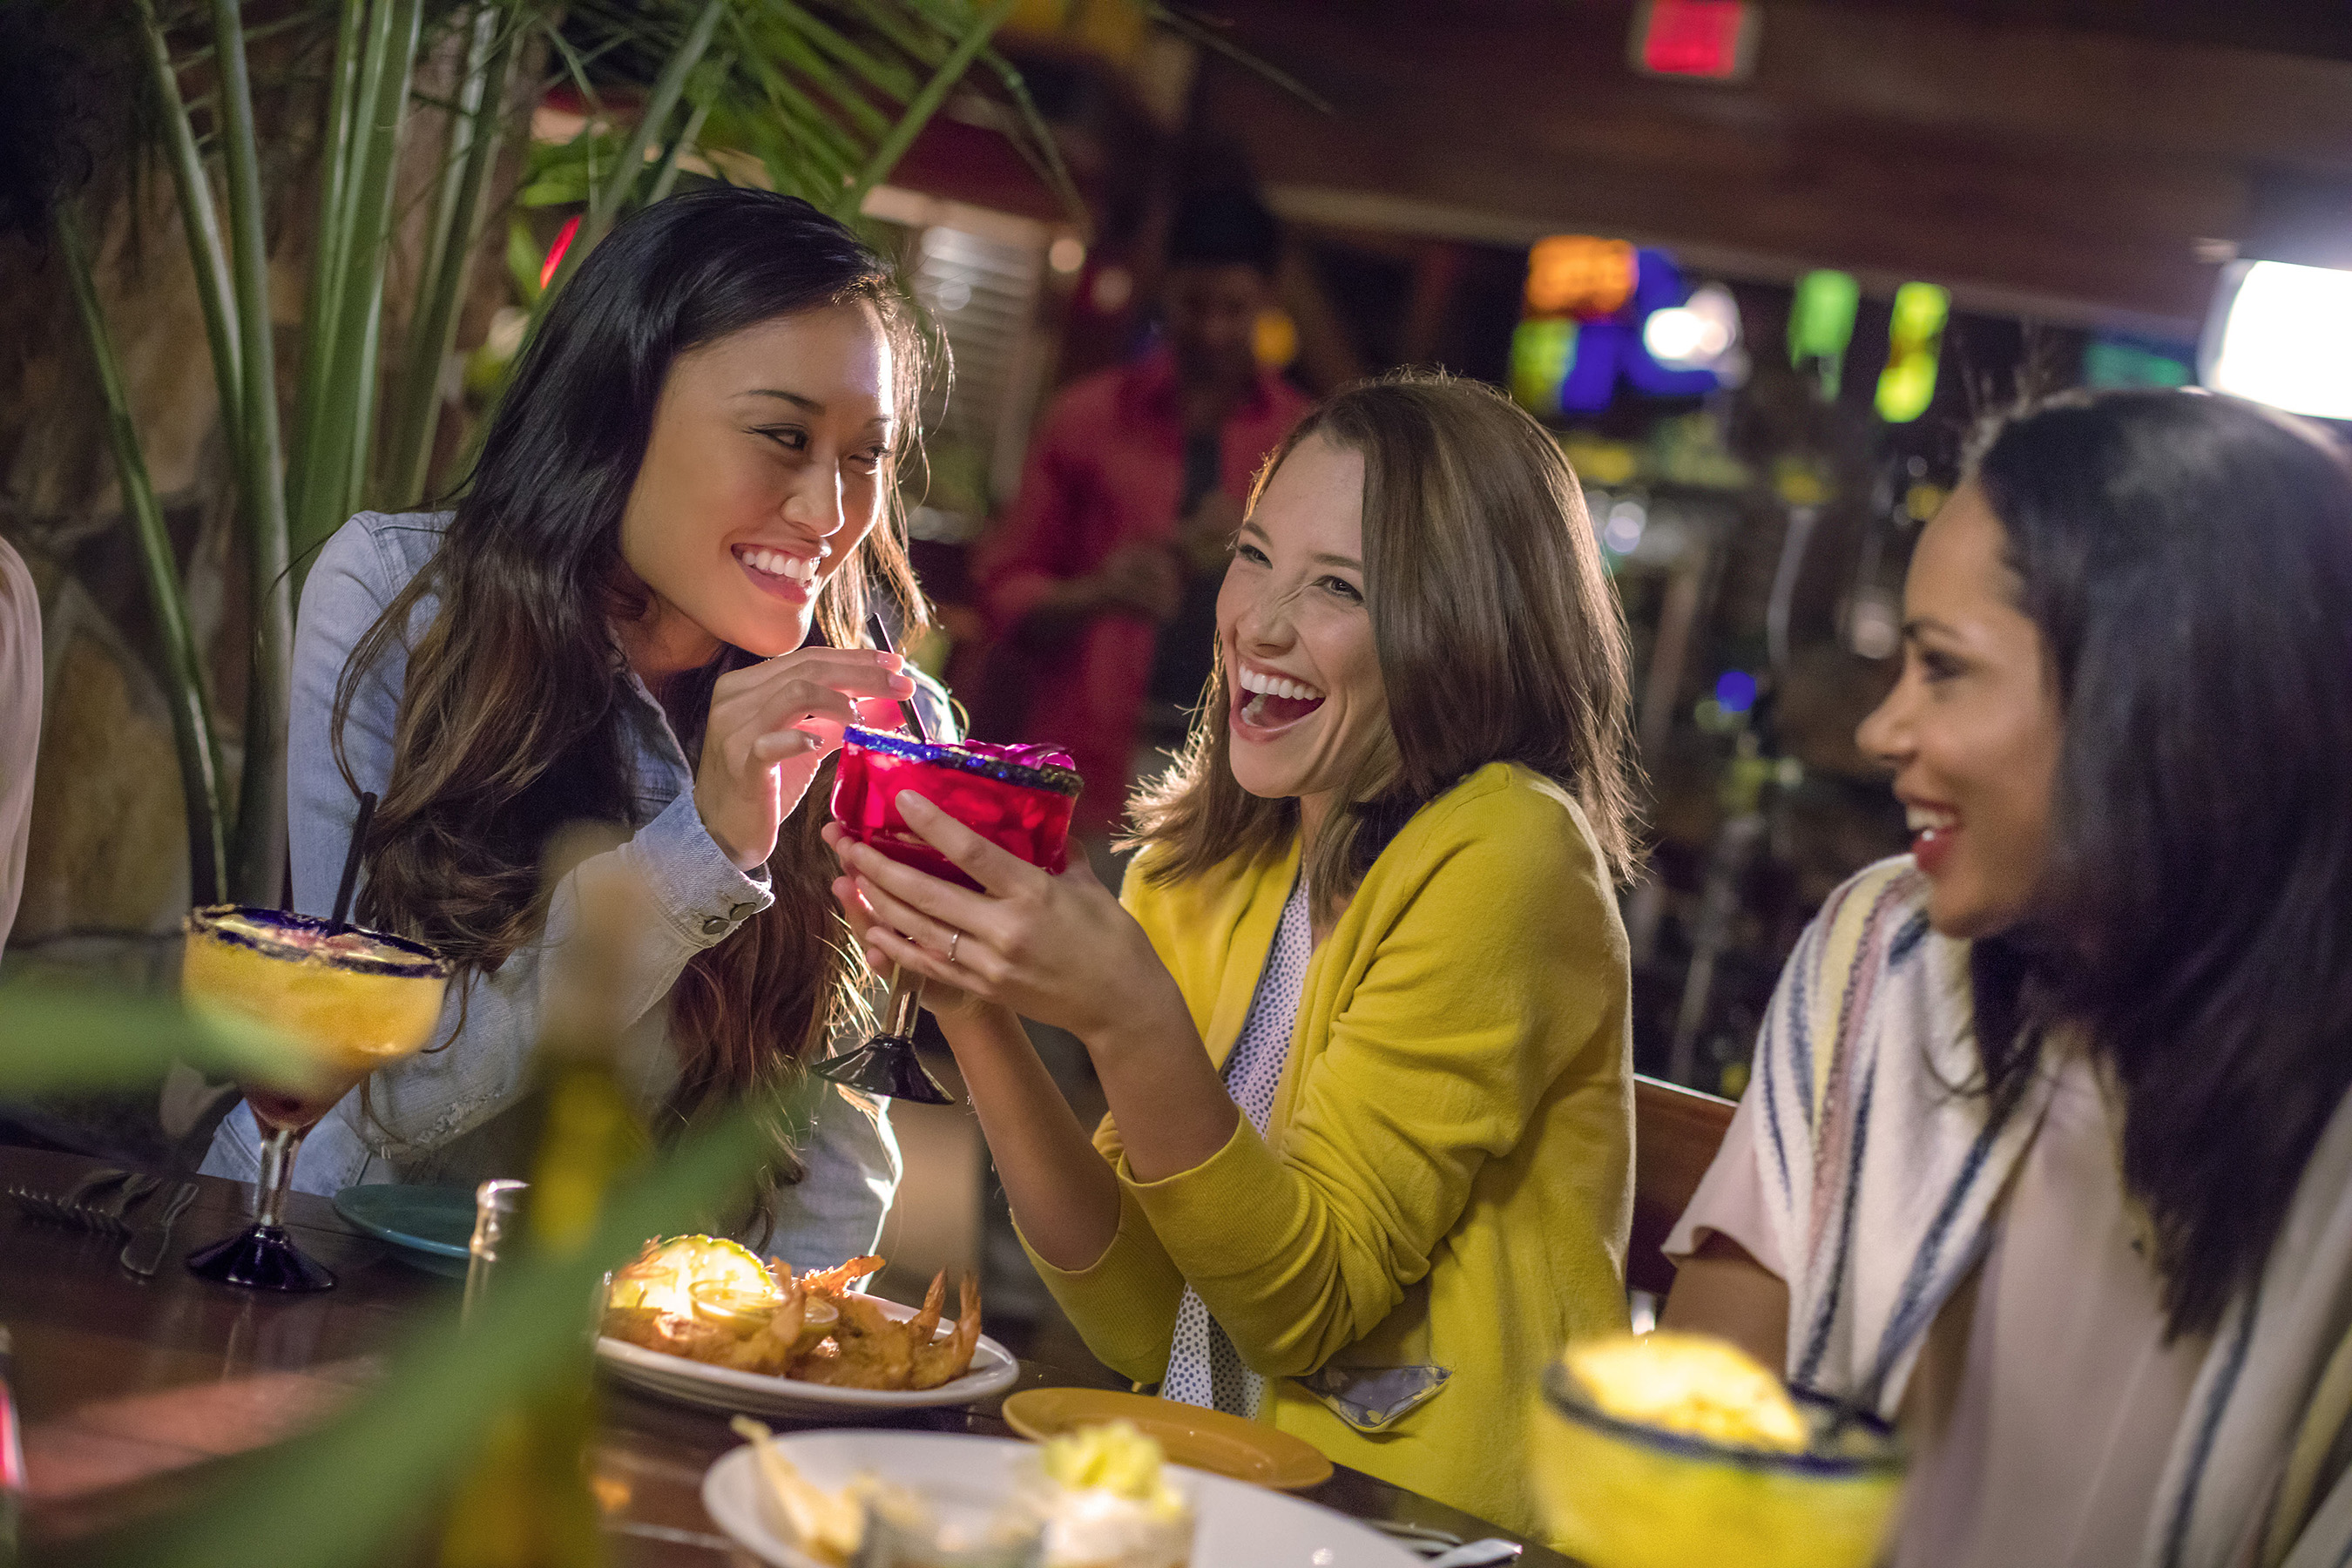 Nothing says girls' night out like margaritas. So gather your crew and get ready to party at Bahama Breeze! Viva la Rita 2016